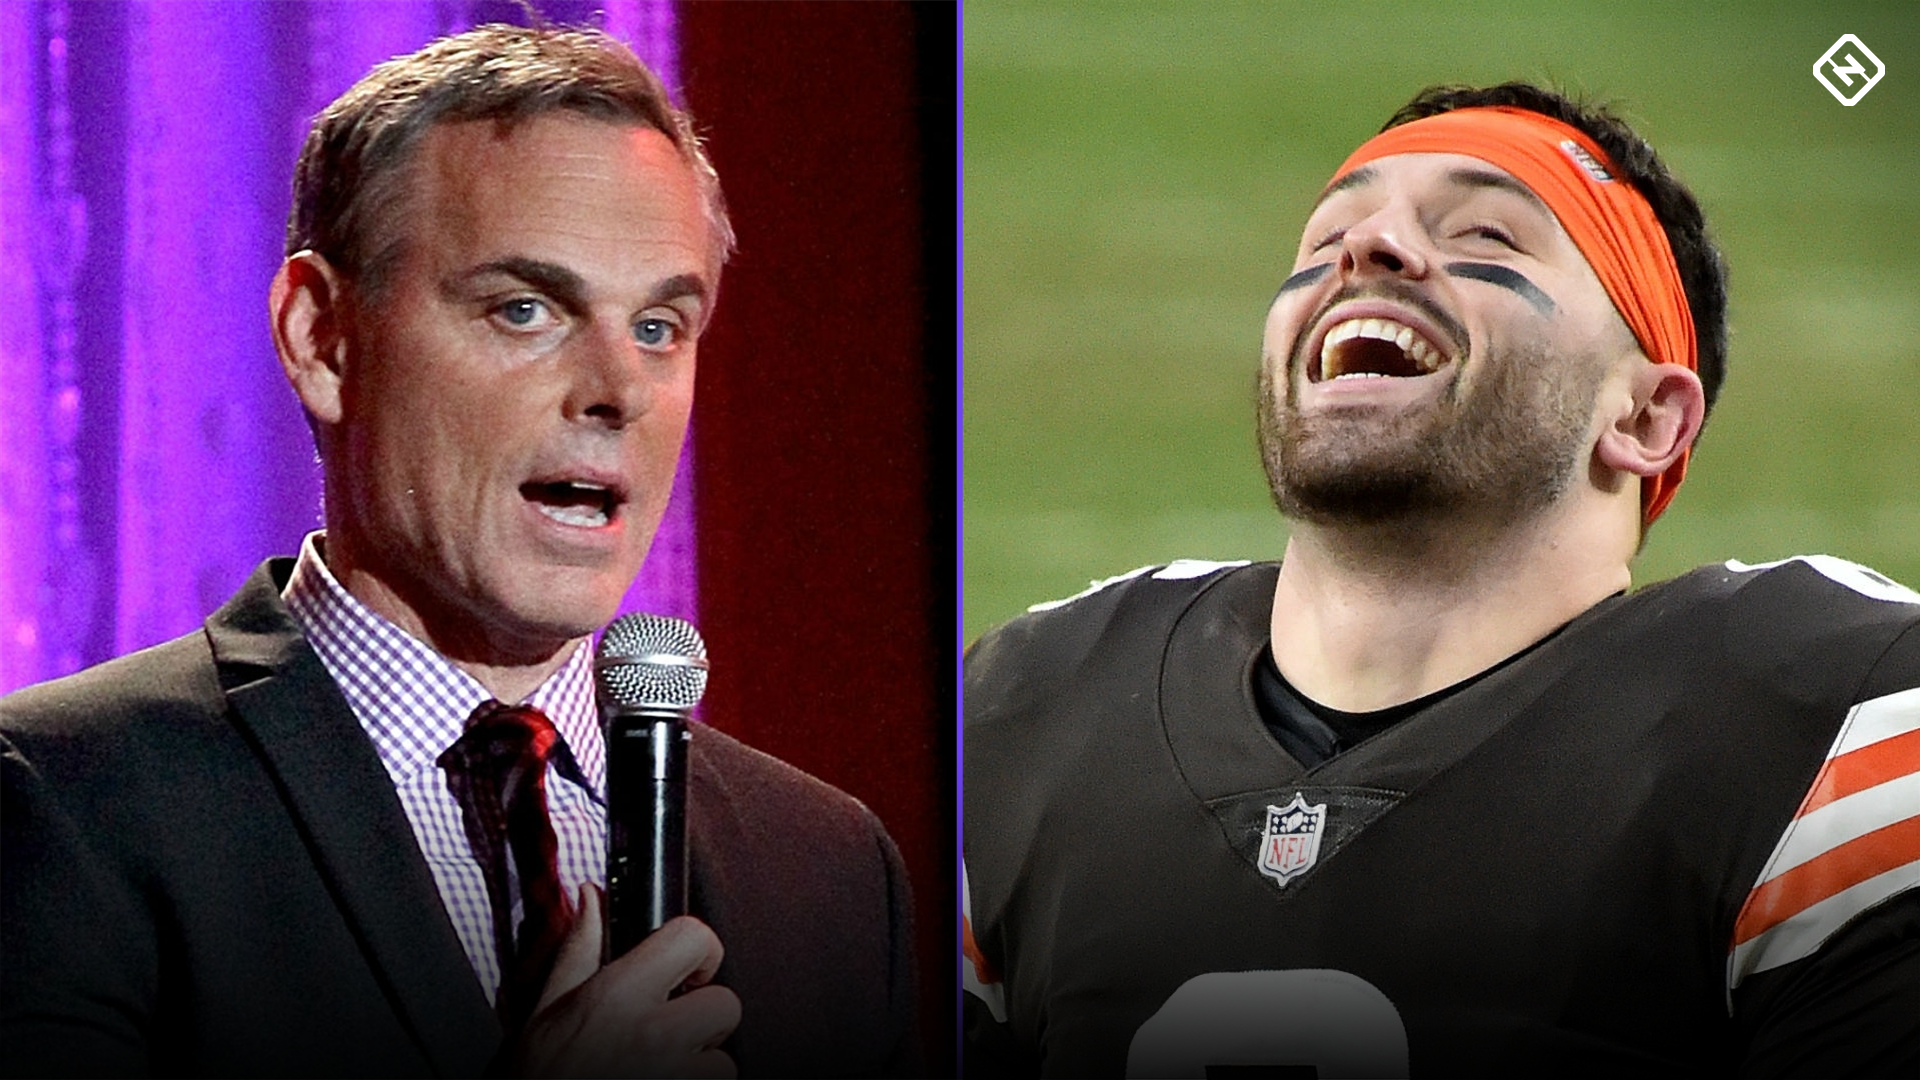 Colin Cowherd uses Baker Mayfield's UFO sighting as another opportunity to knock Browns QB